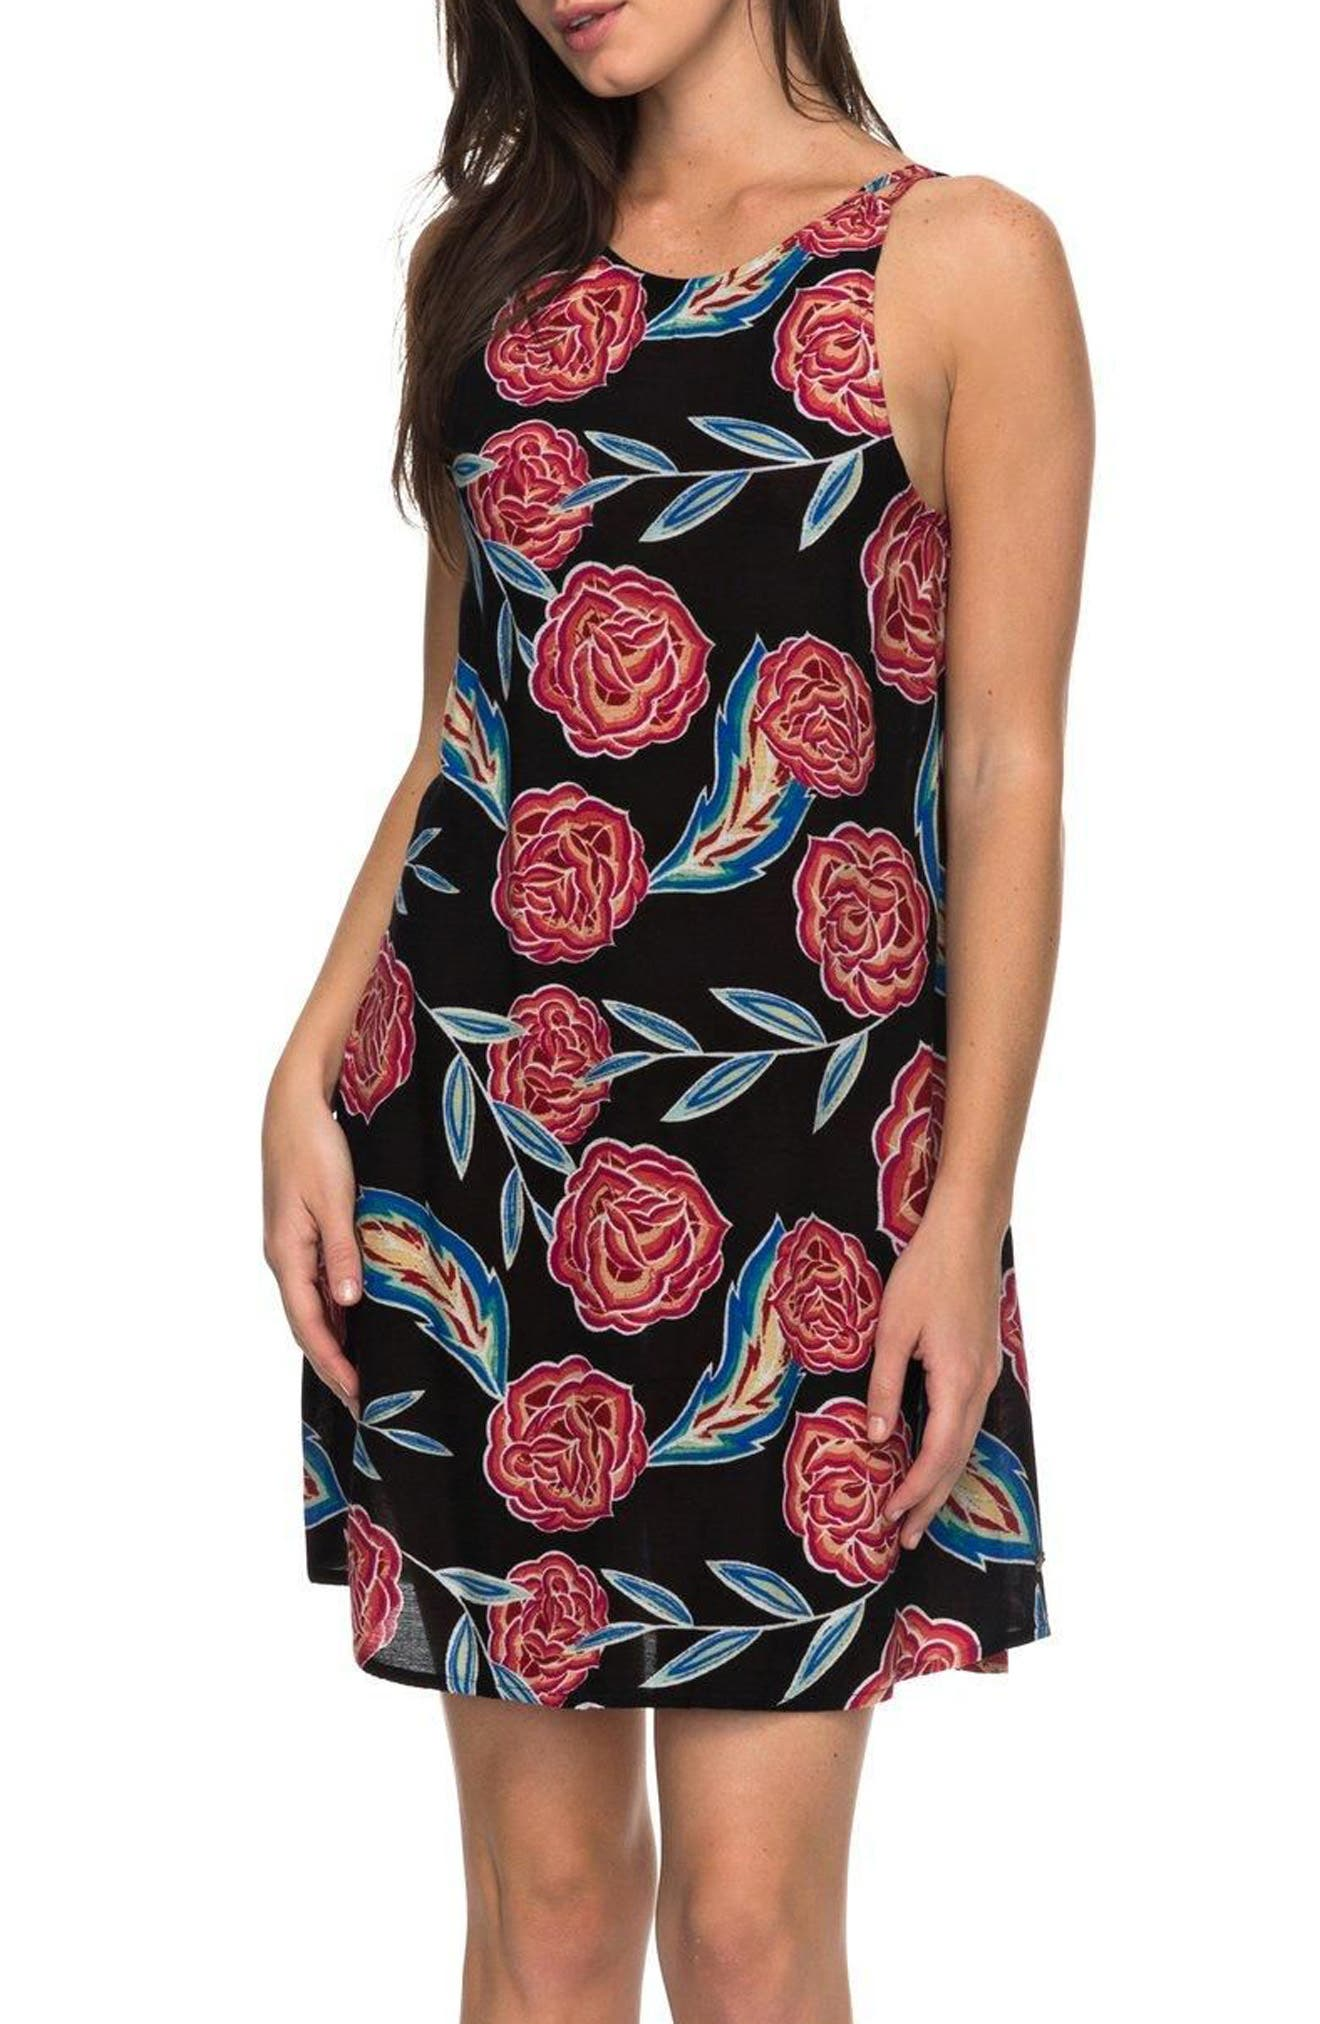 Sunburnt Land Shift Dress,                             Main thumbnail 1, color,                             Anthracite Mexican Roses